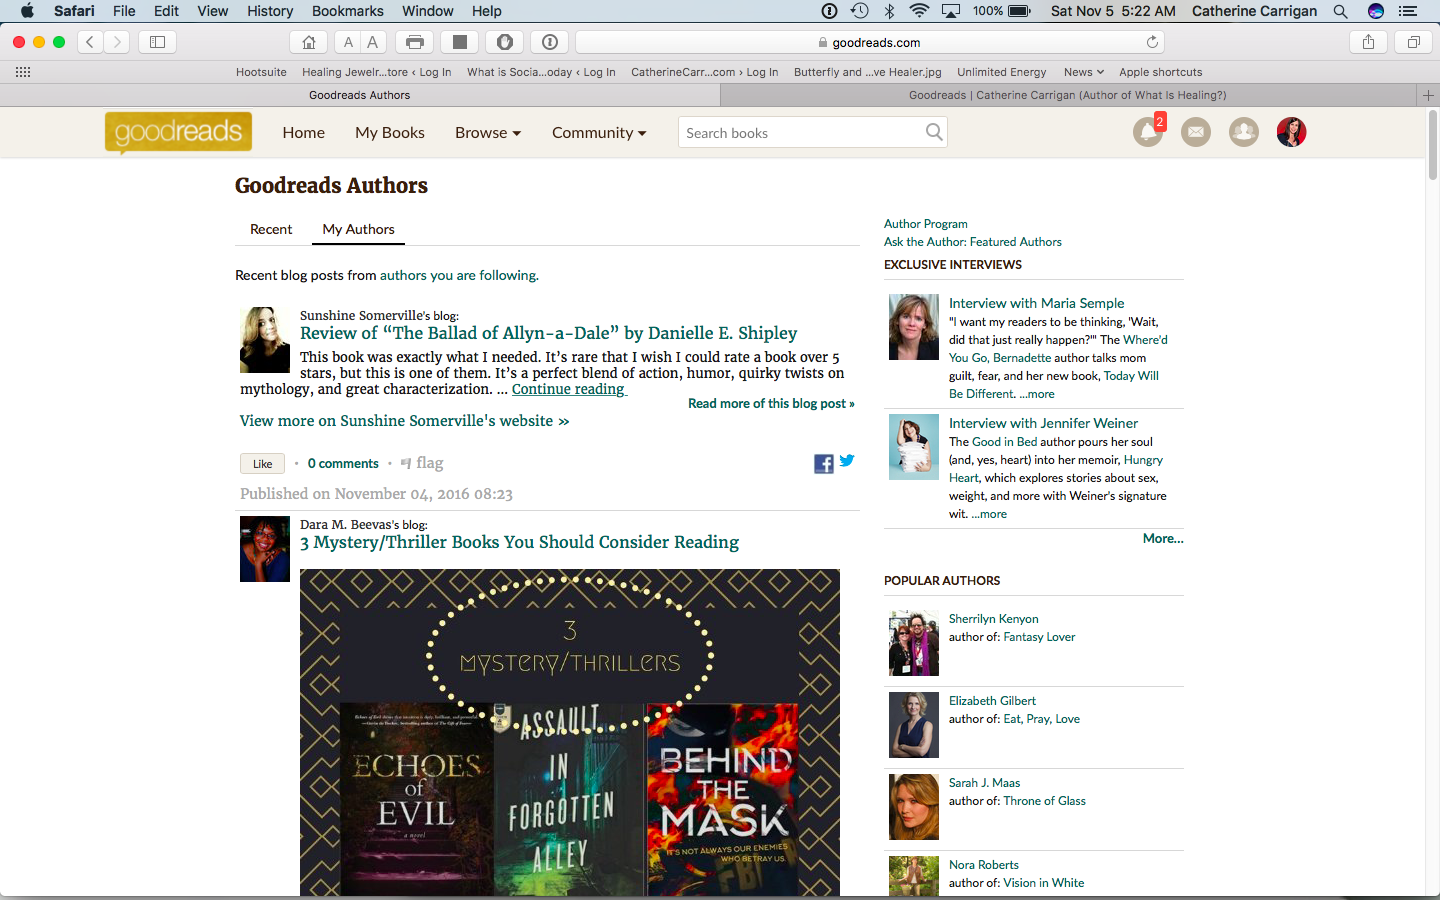 When You Add Your Blog to Goodreads It Shows Up Under A Feed For All Your Friends and Followers